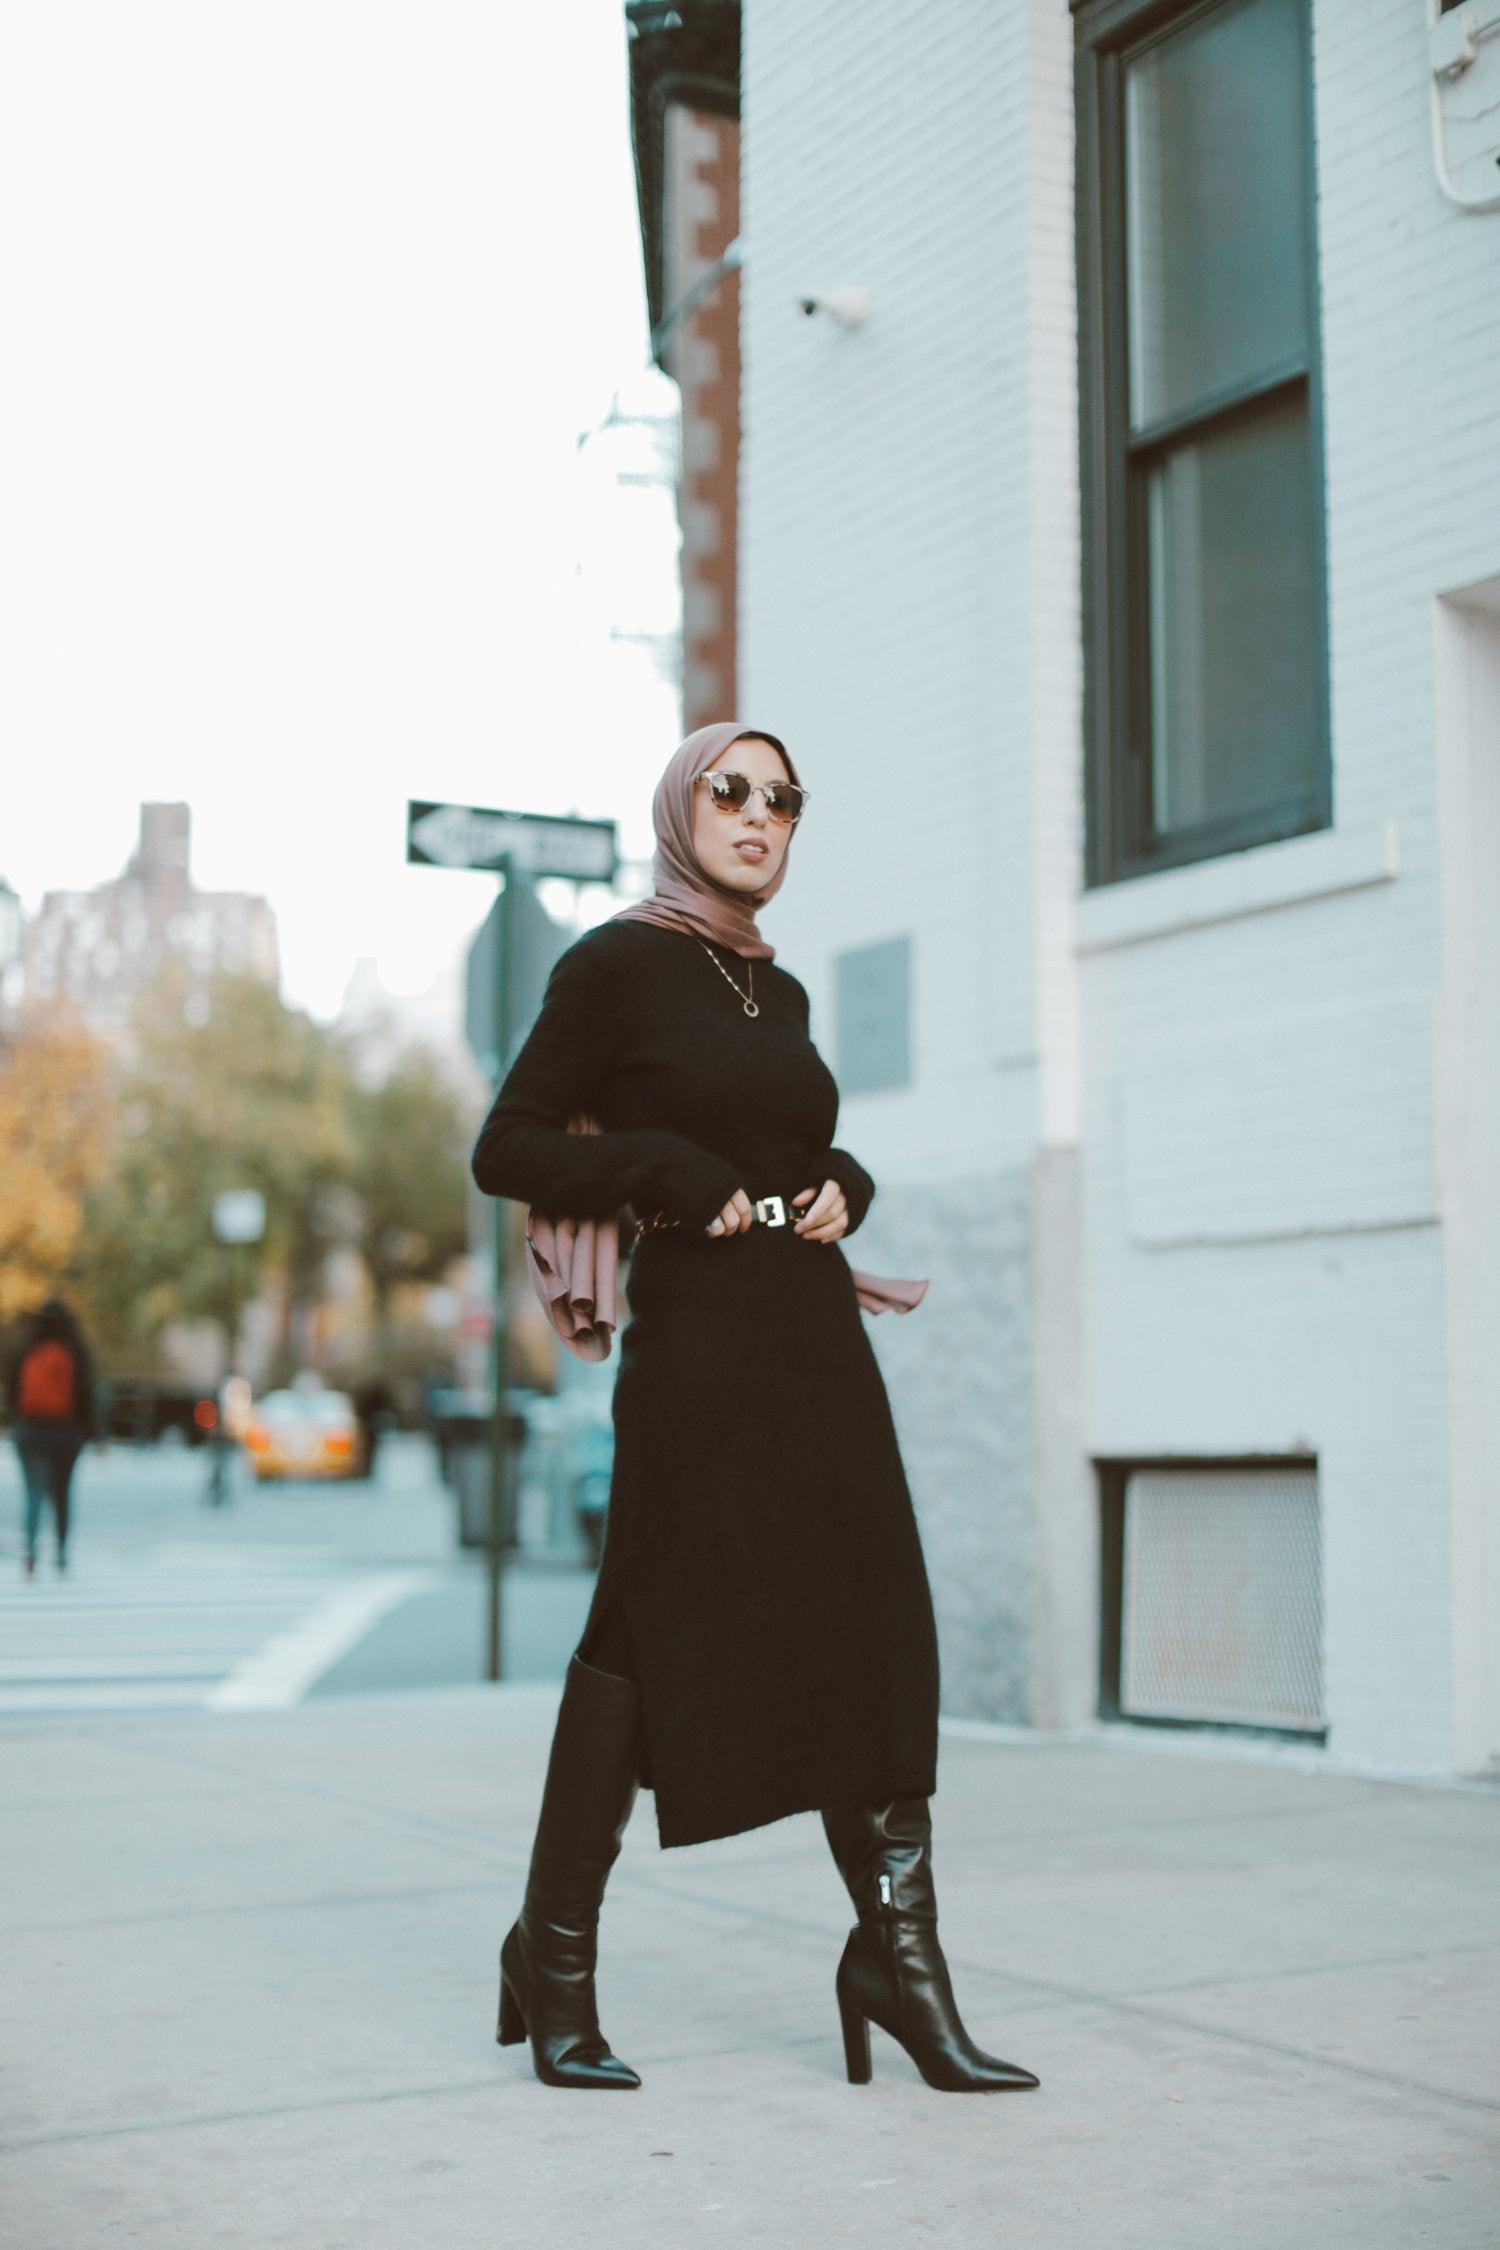 Sweater Dresses + Boots this Fall with Nordstrom